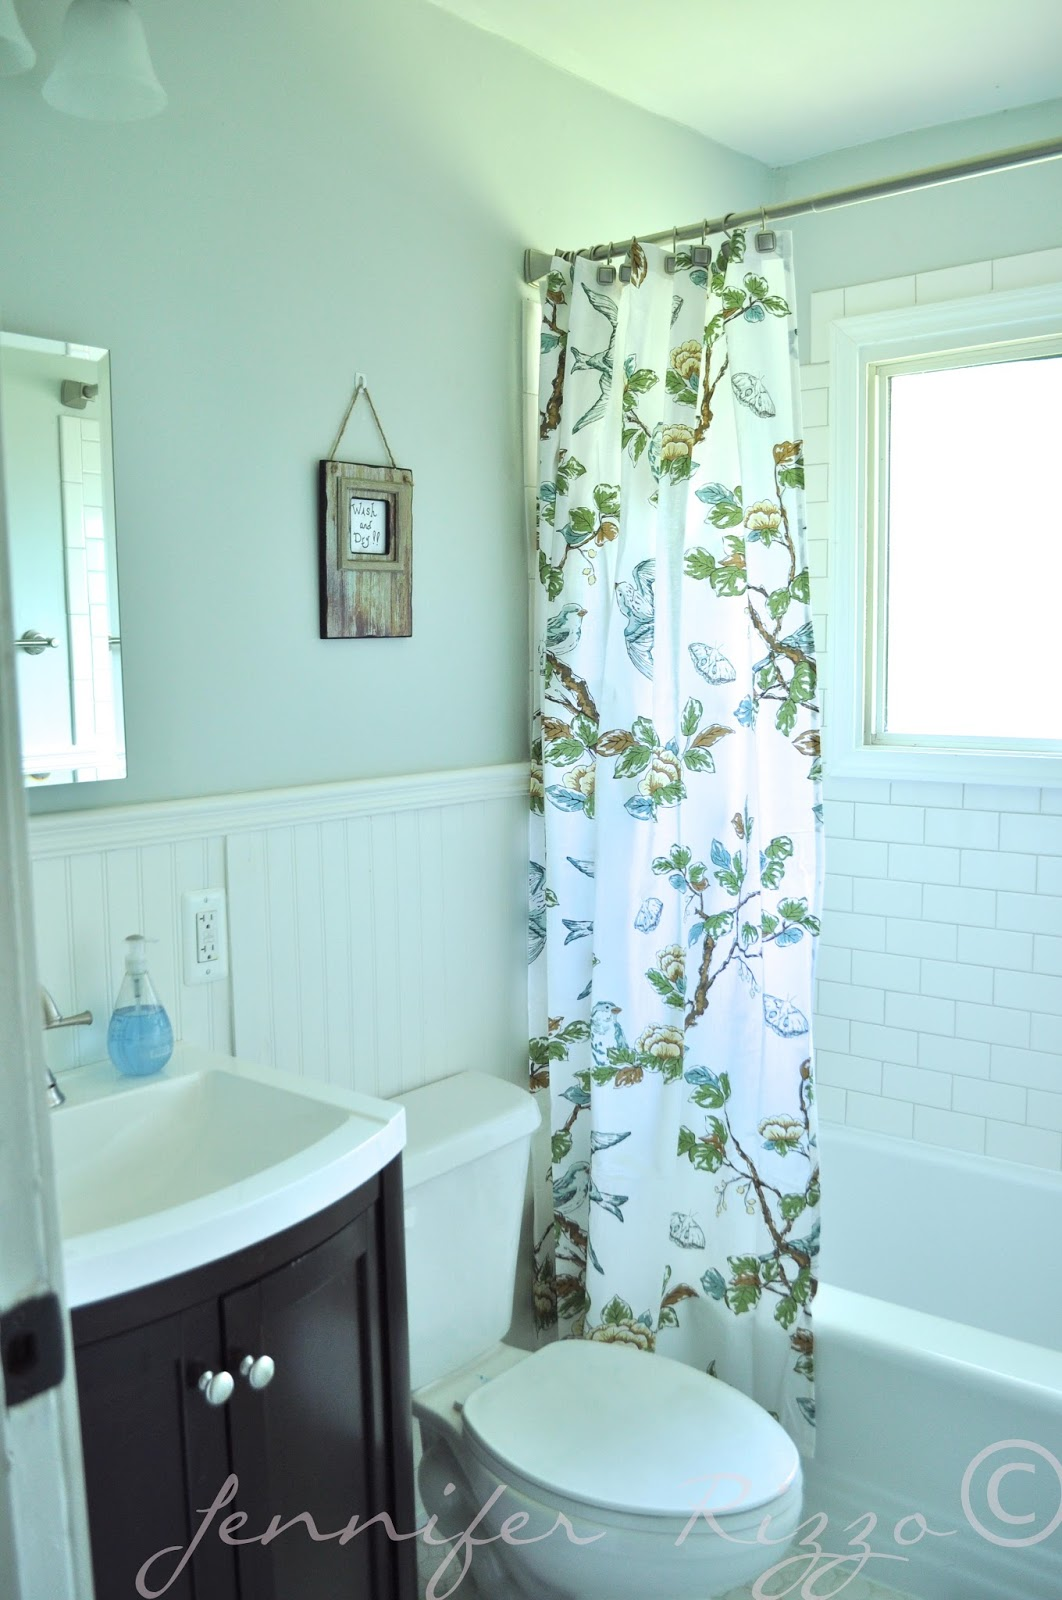 wonderful-blue-shade-vintage-bathroom-tile-patterns-classic-kitchen-design-ideas-floral-pattern-bathtub-drapes-adorable-vintage-bathroom-tile-patterns-blue-bathroom-floor-tile-bathroom-favorite-ch